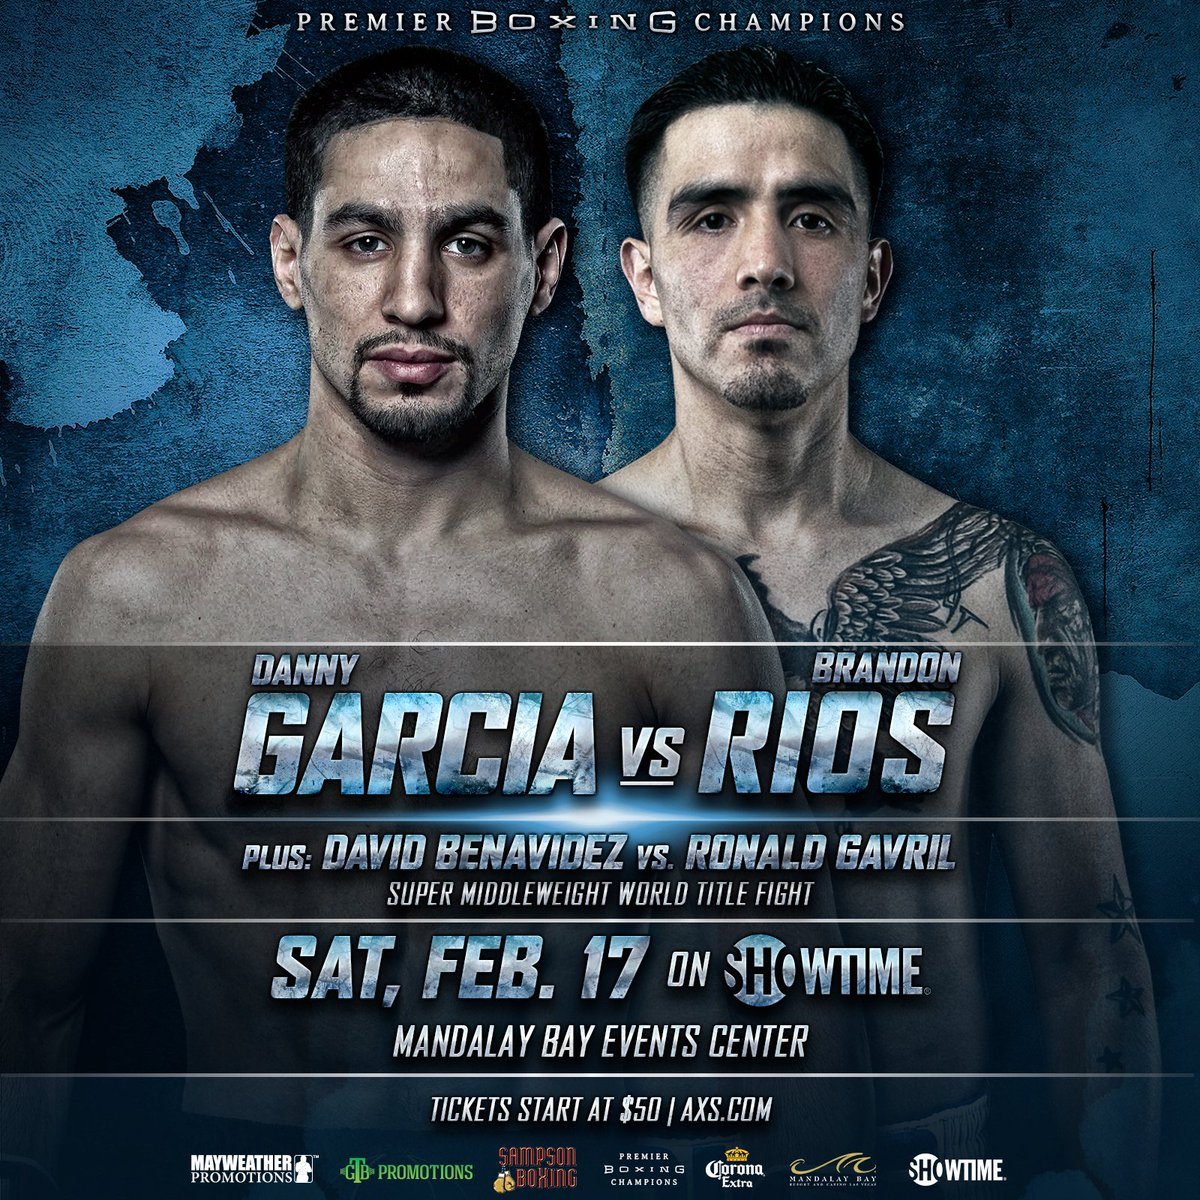 test Twitter Media - 1 month from today, Brandon Rios and Danny Garcia will square up in a welterweight showdown February 17th at the Mandalay Events Center. David Benavidez and Ronald Gavril will rematch in the co-feature. Tickets are on sale now https://t.co/J2eKkHztD0 #GarciaRios #BenavidezGavril https://t.co/bxCrrlbHOG